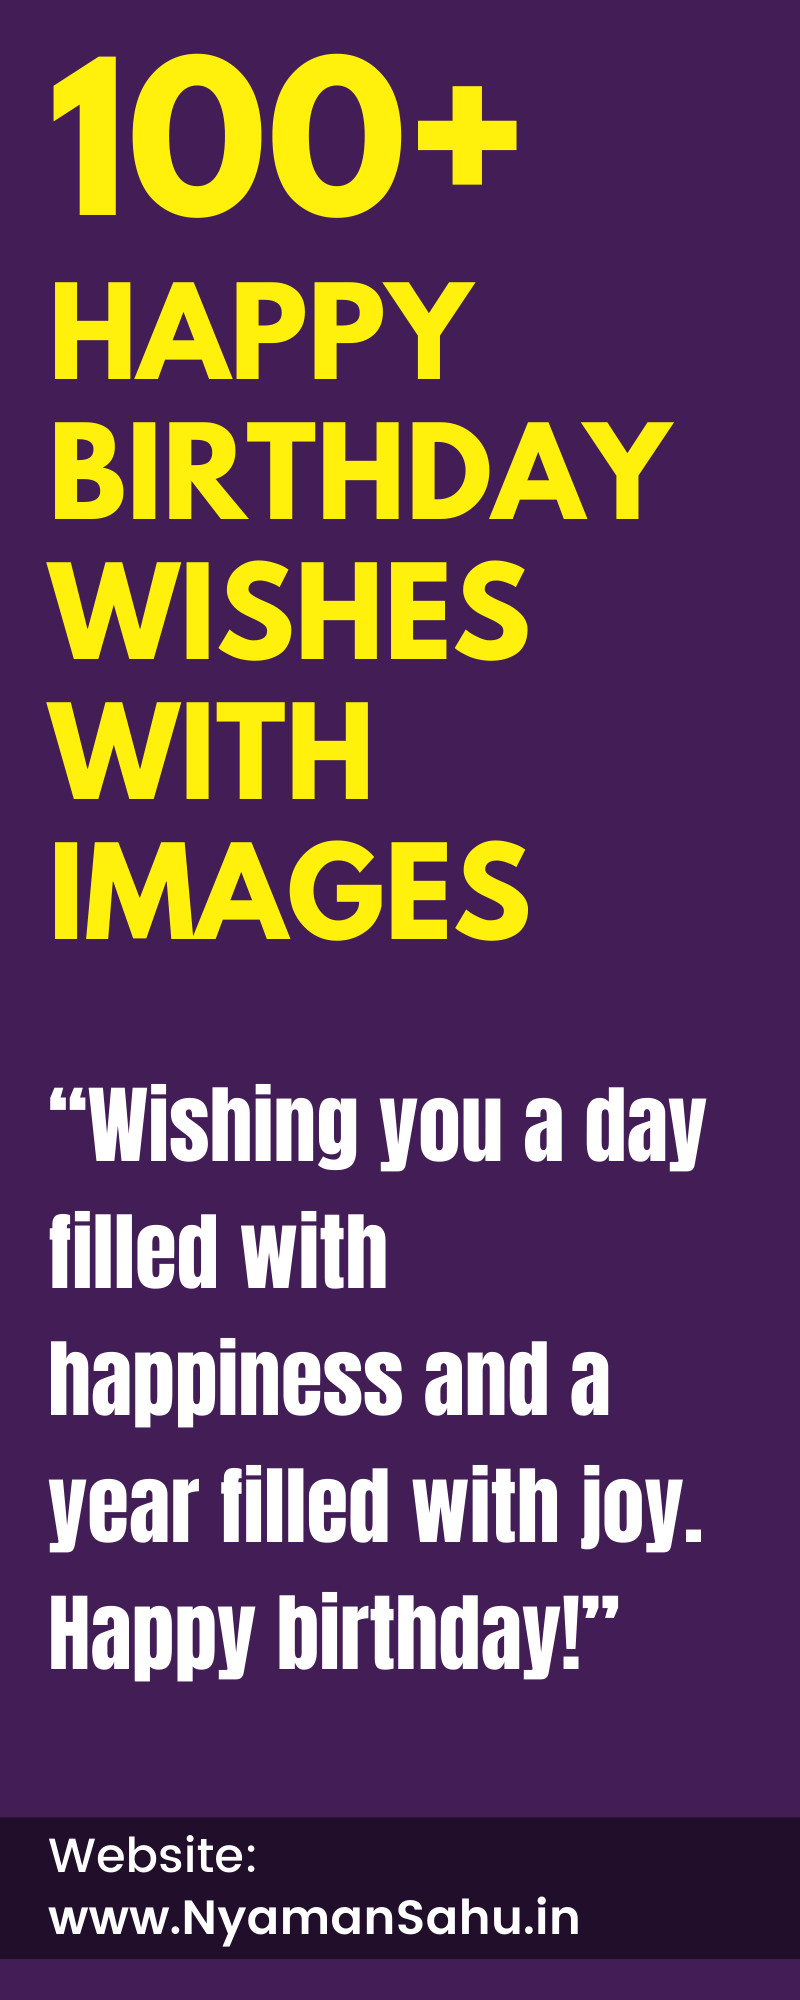 Happy Birthday Wishes with images